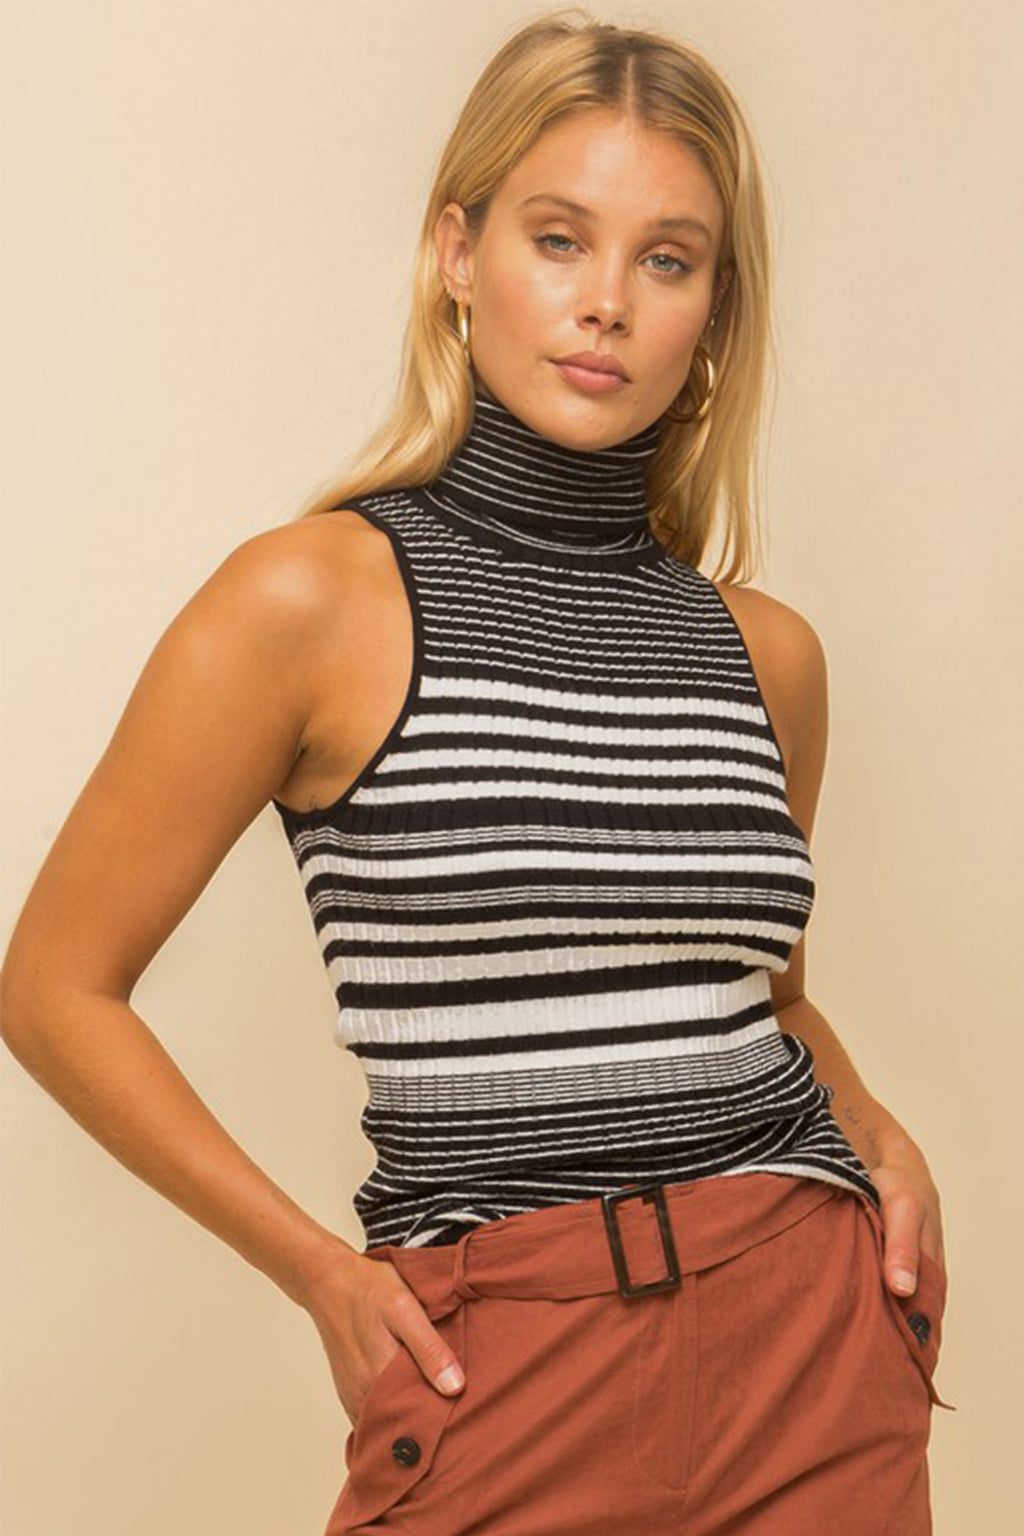 Amber Striped Turtleneck in Black